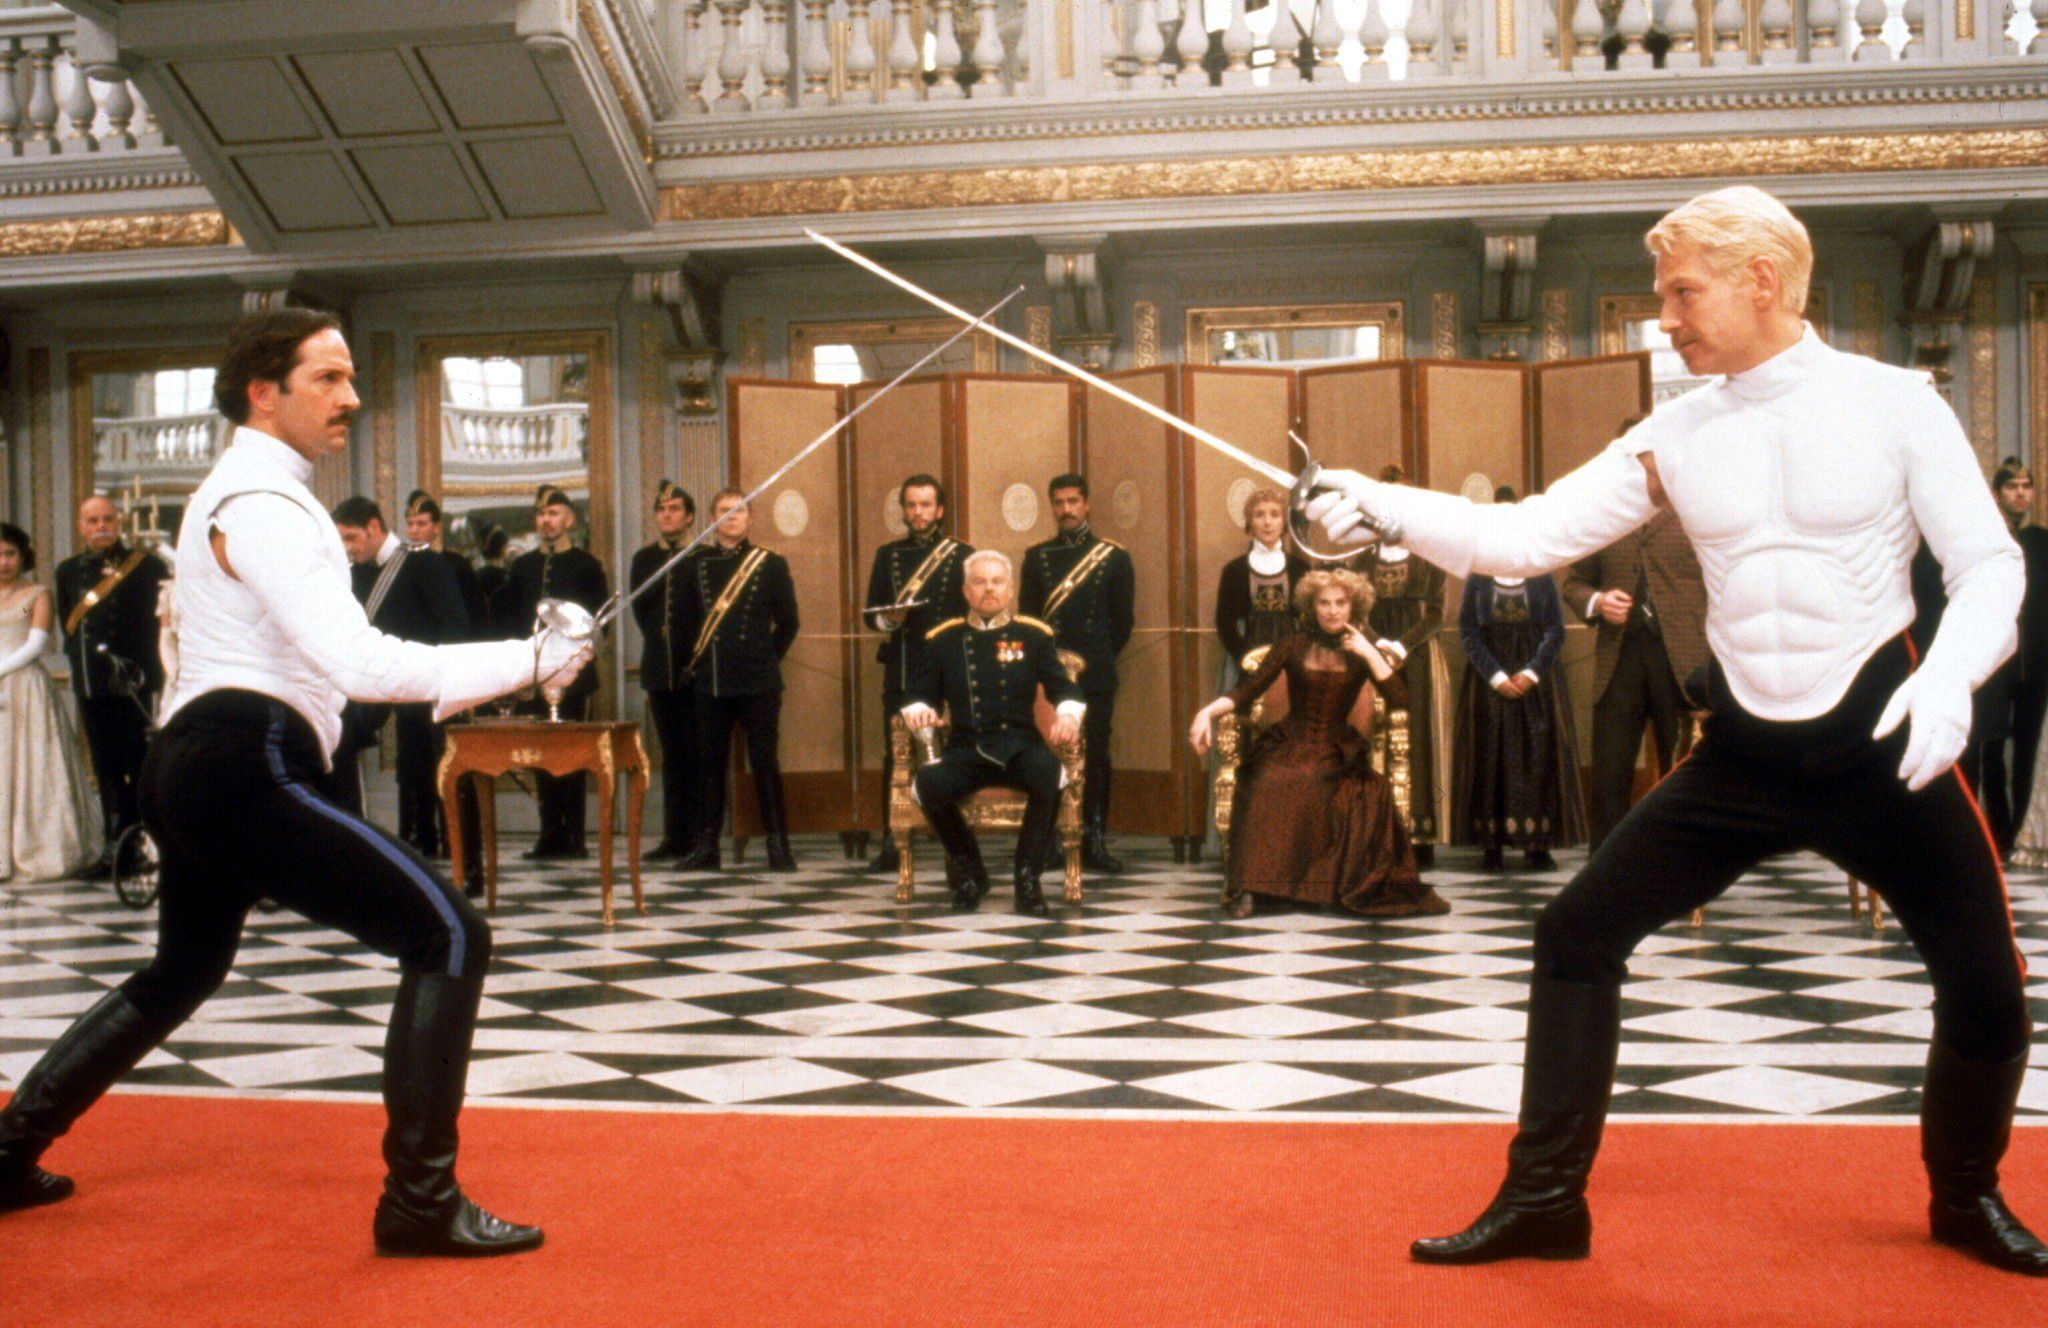 Learn to sword fight on dvd